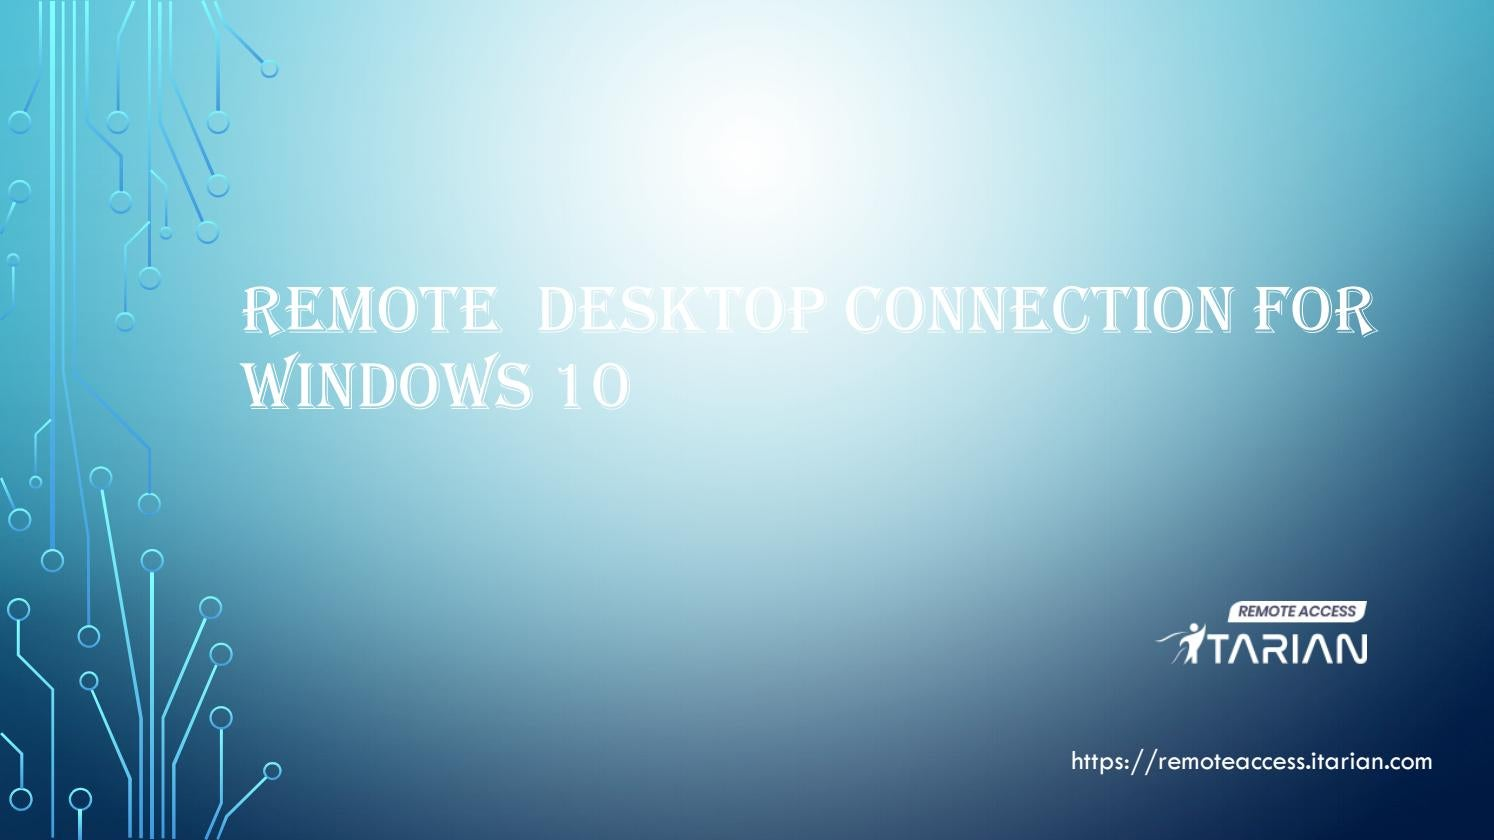 How to Setup Remote Desktop Connection for Windows 10? by